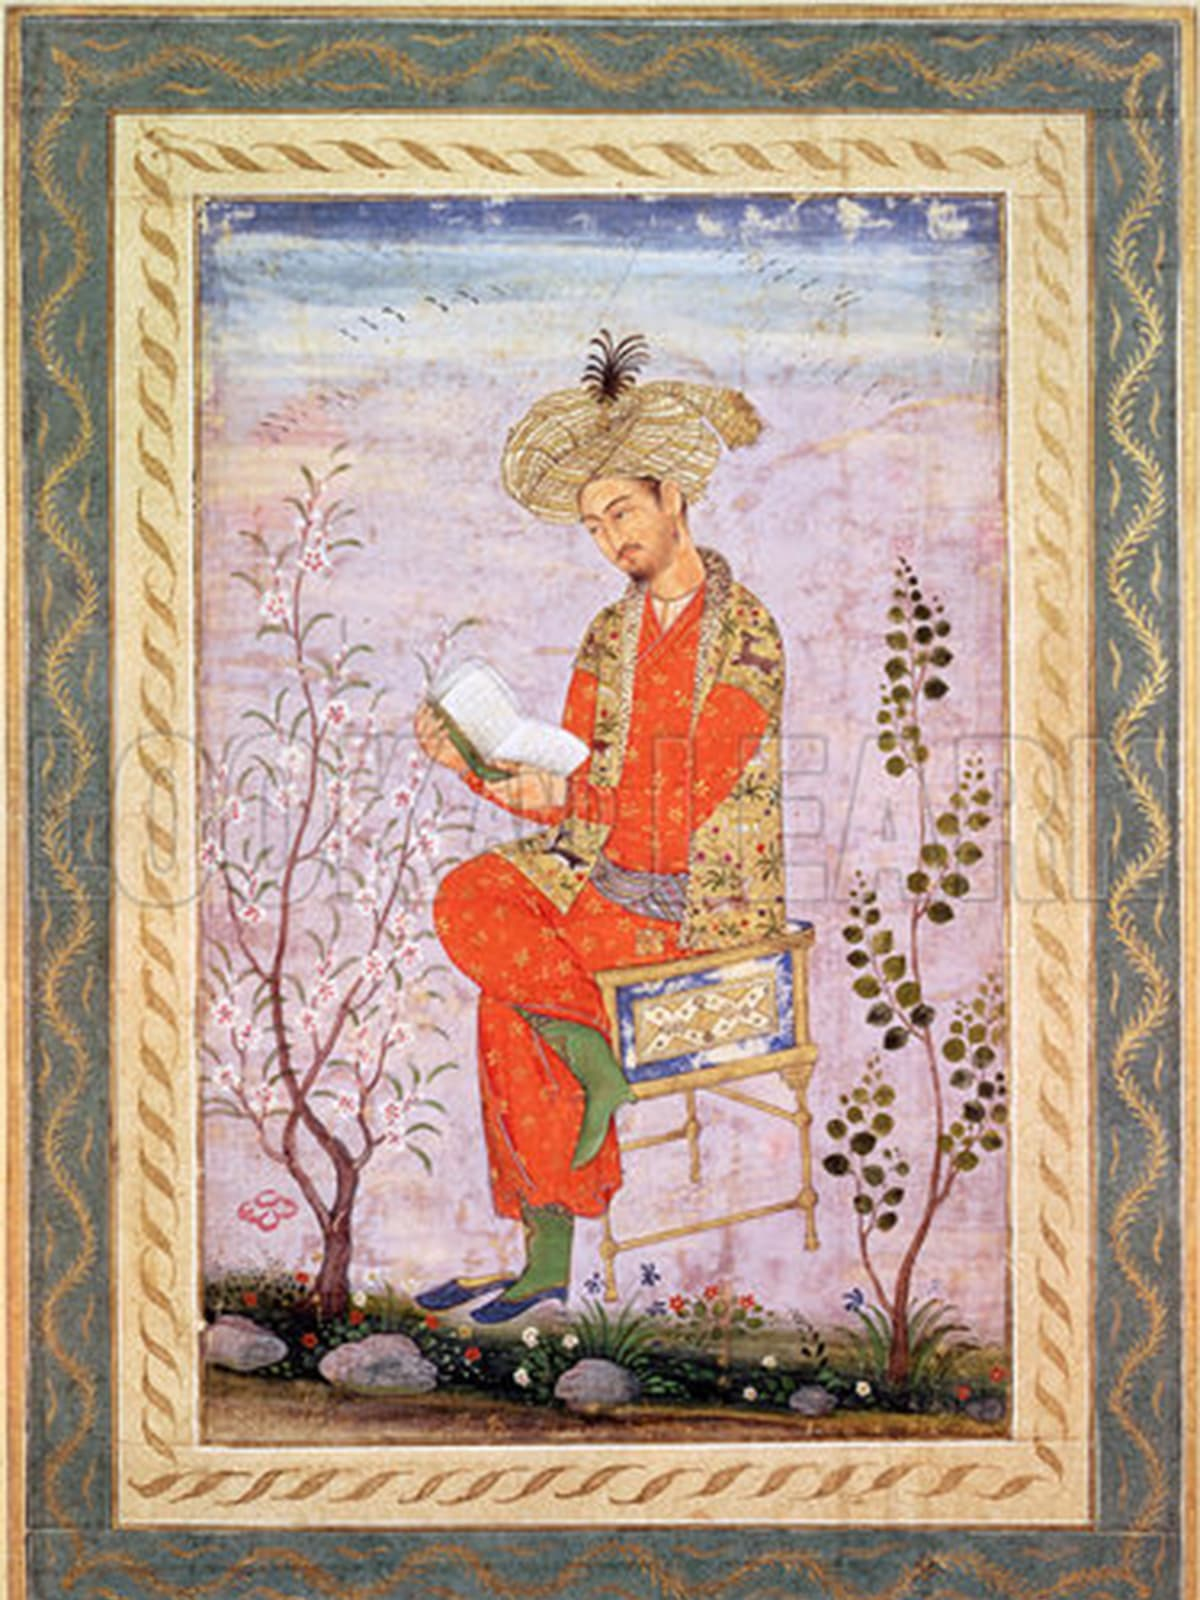 Miniature painting shows Babur reading | Creative Commons